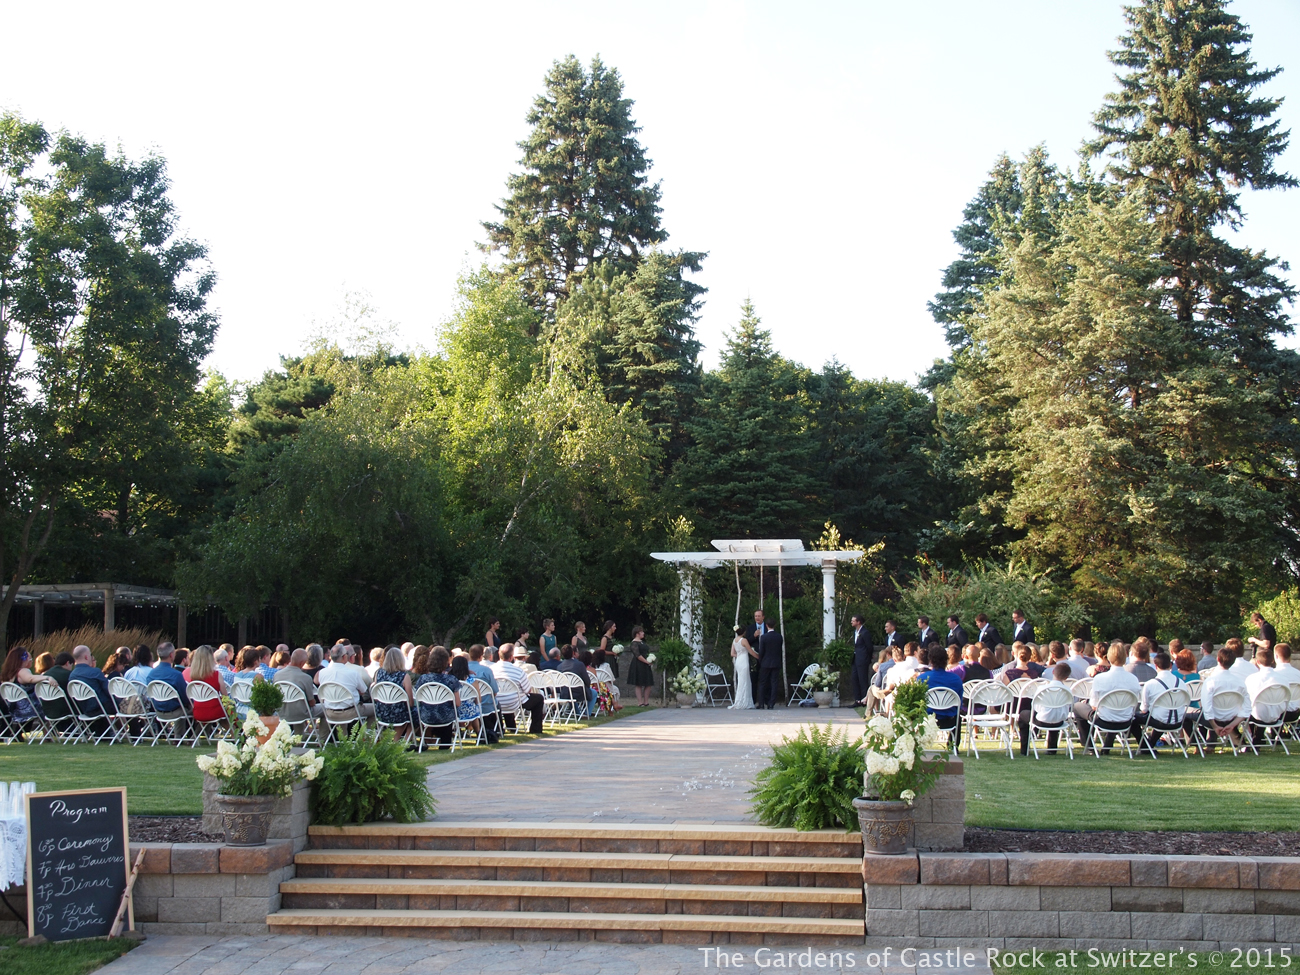 The Gardens Of Castle Rock: The Ceremony At The Gardens